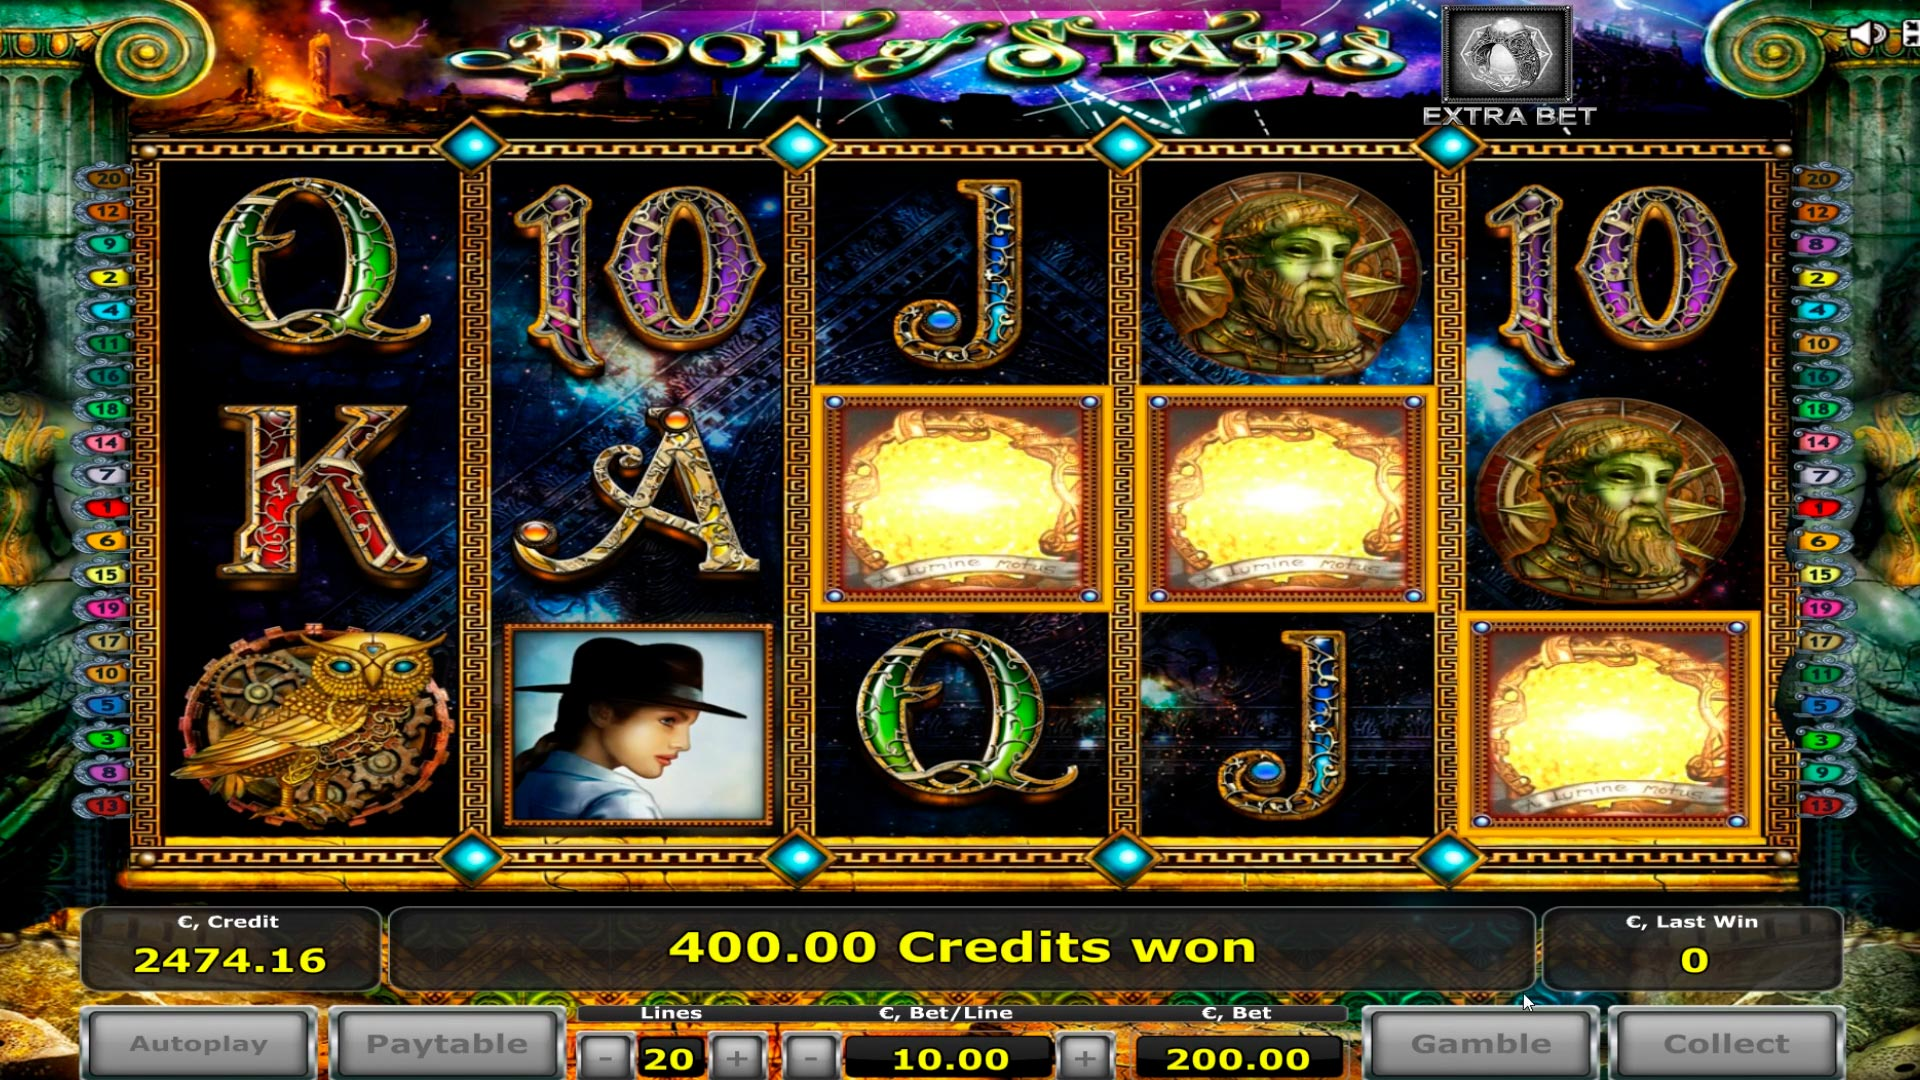 Grande vincita del book of stars casino - € 20.000